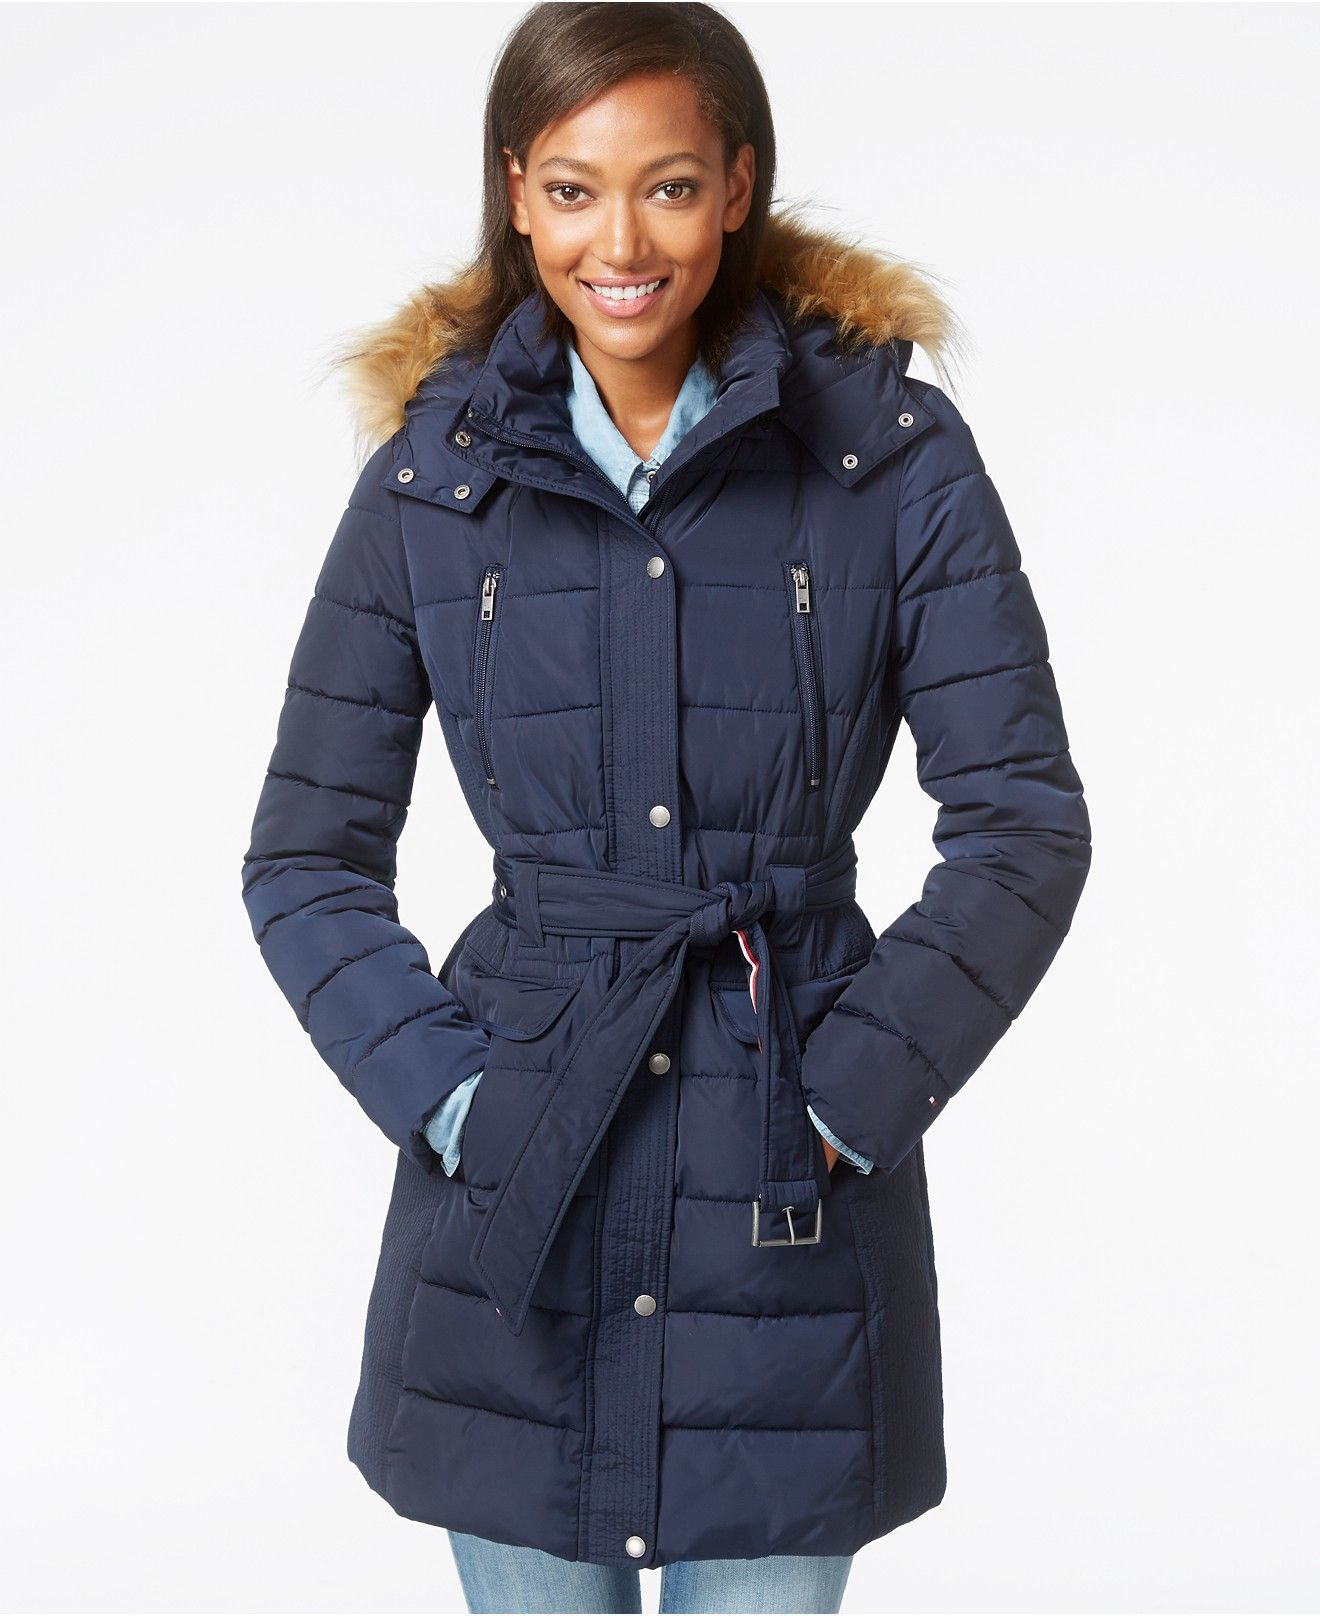 93627f485 Tommy Hilfiger Faux-Fur-Trim Belted Puffer Coat - Coats - Women - Macy s